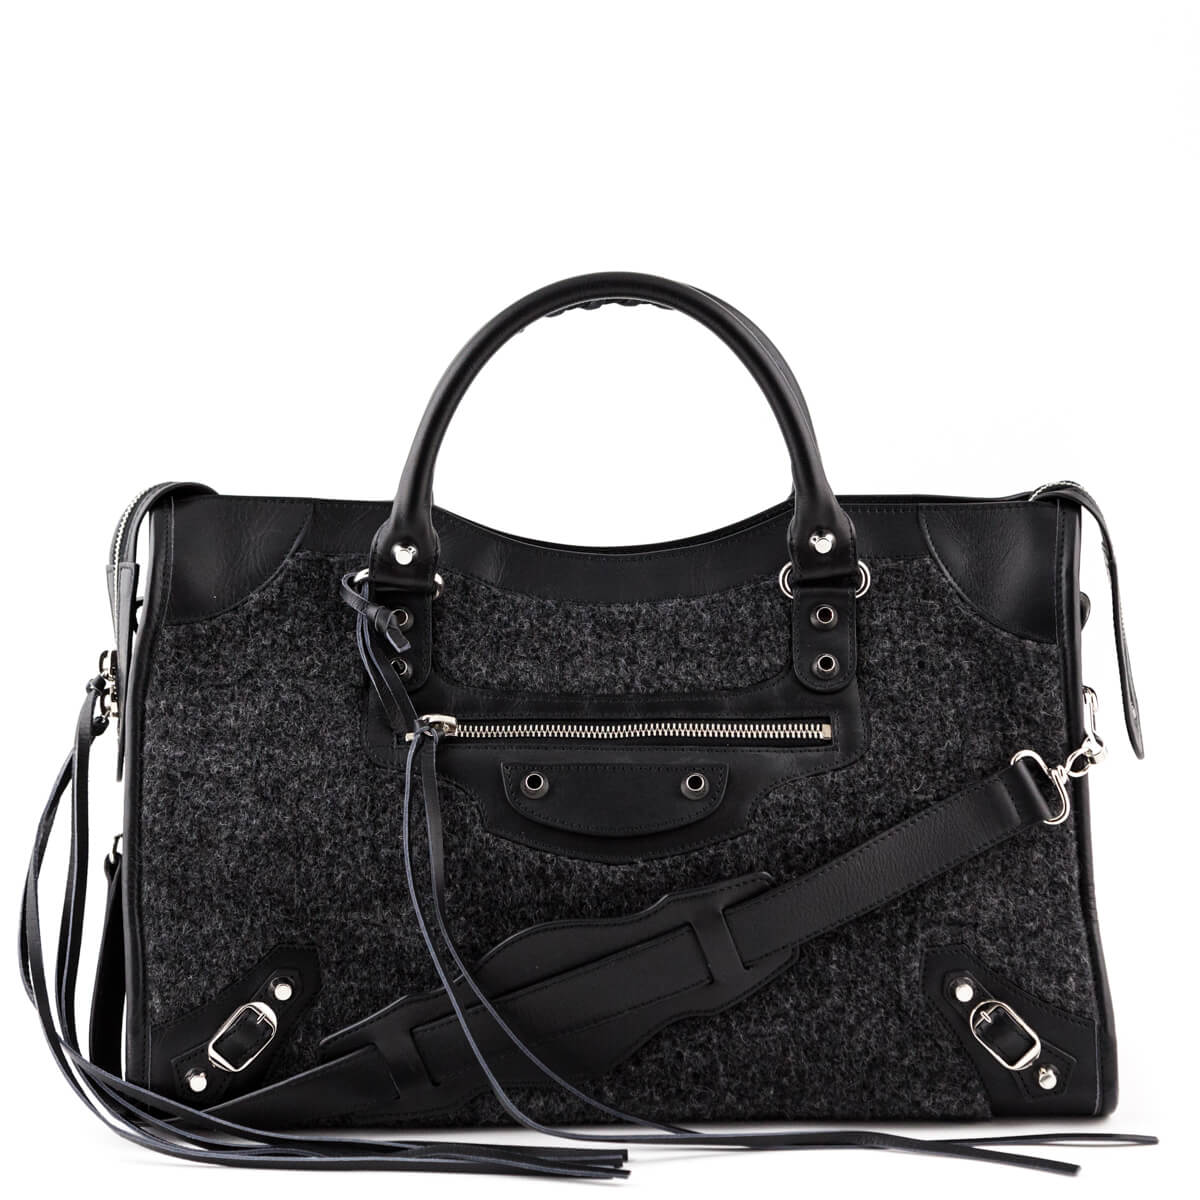 b303875e0ef Balenciaga Motocross Alpaca Classic City - LOVE that BAG - Preowned  Authentic Designer Handbags ...